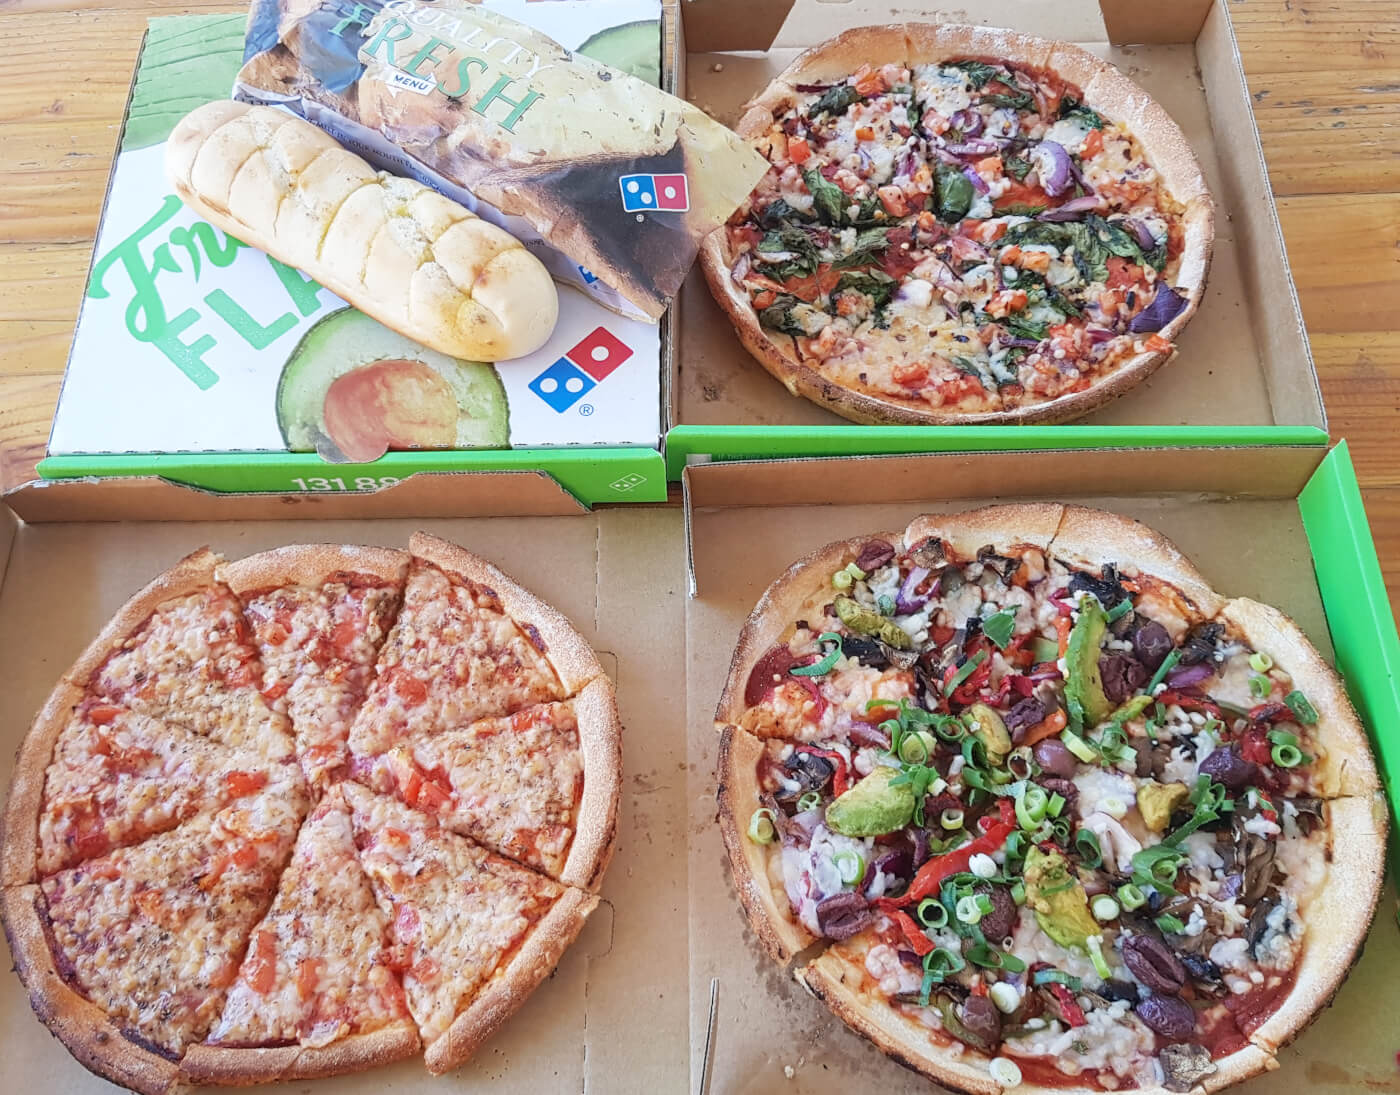 VICTORY: OMG, Domino's Pizza Offers Vegan Cheese! | News | PETA